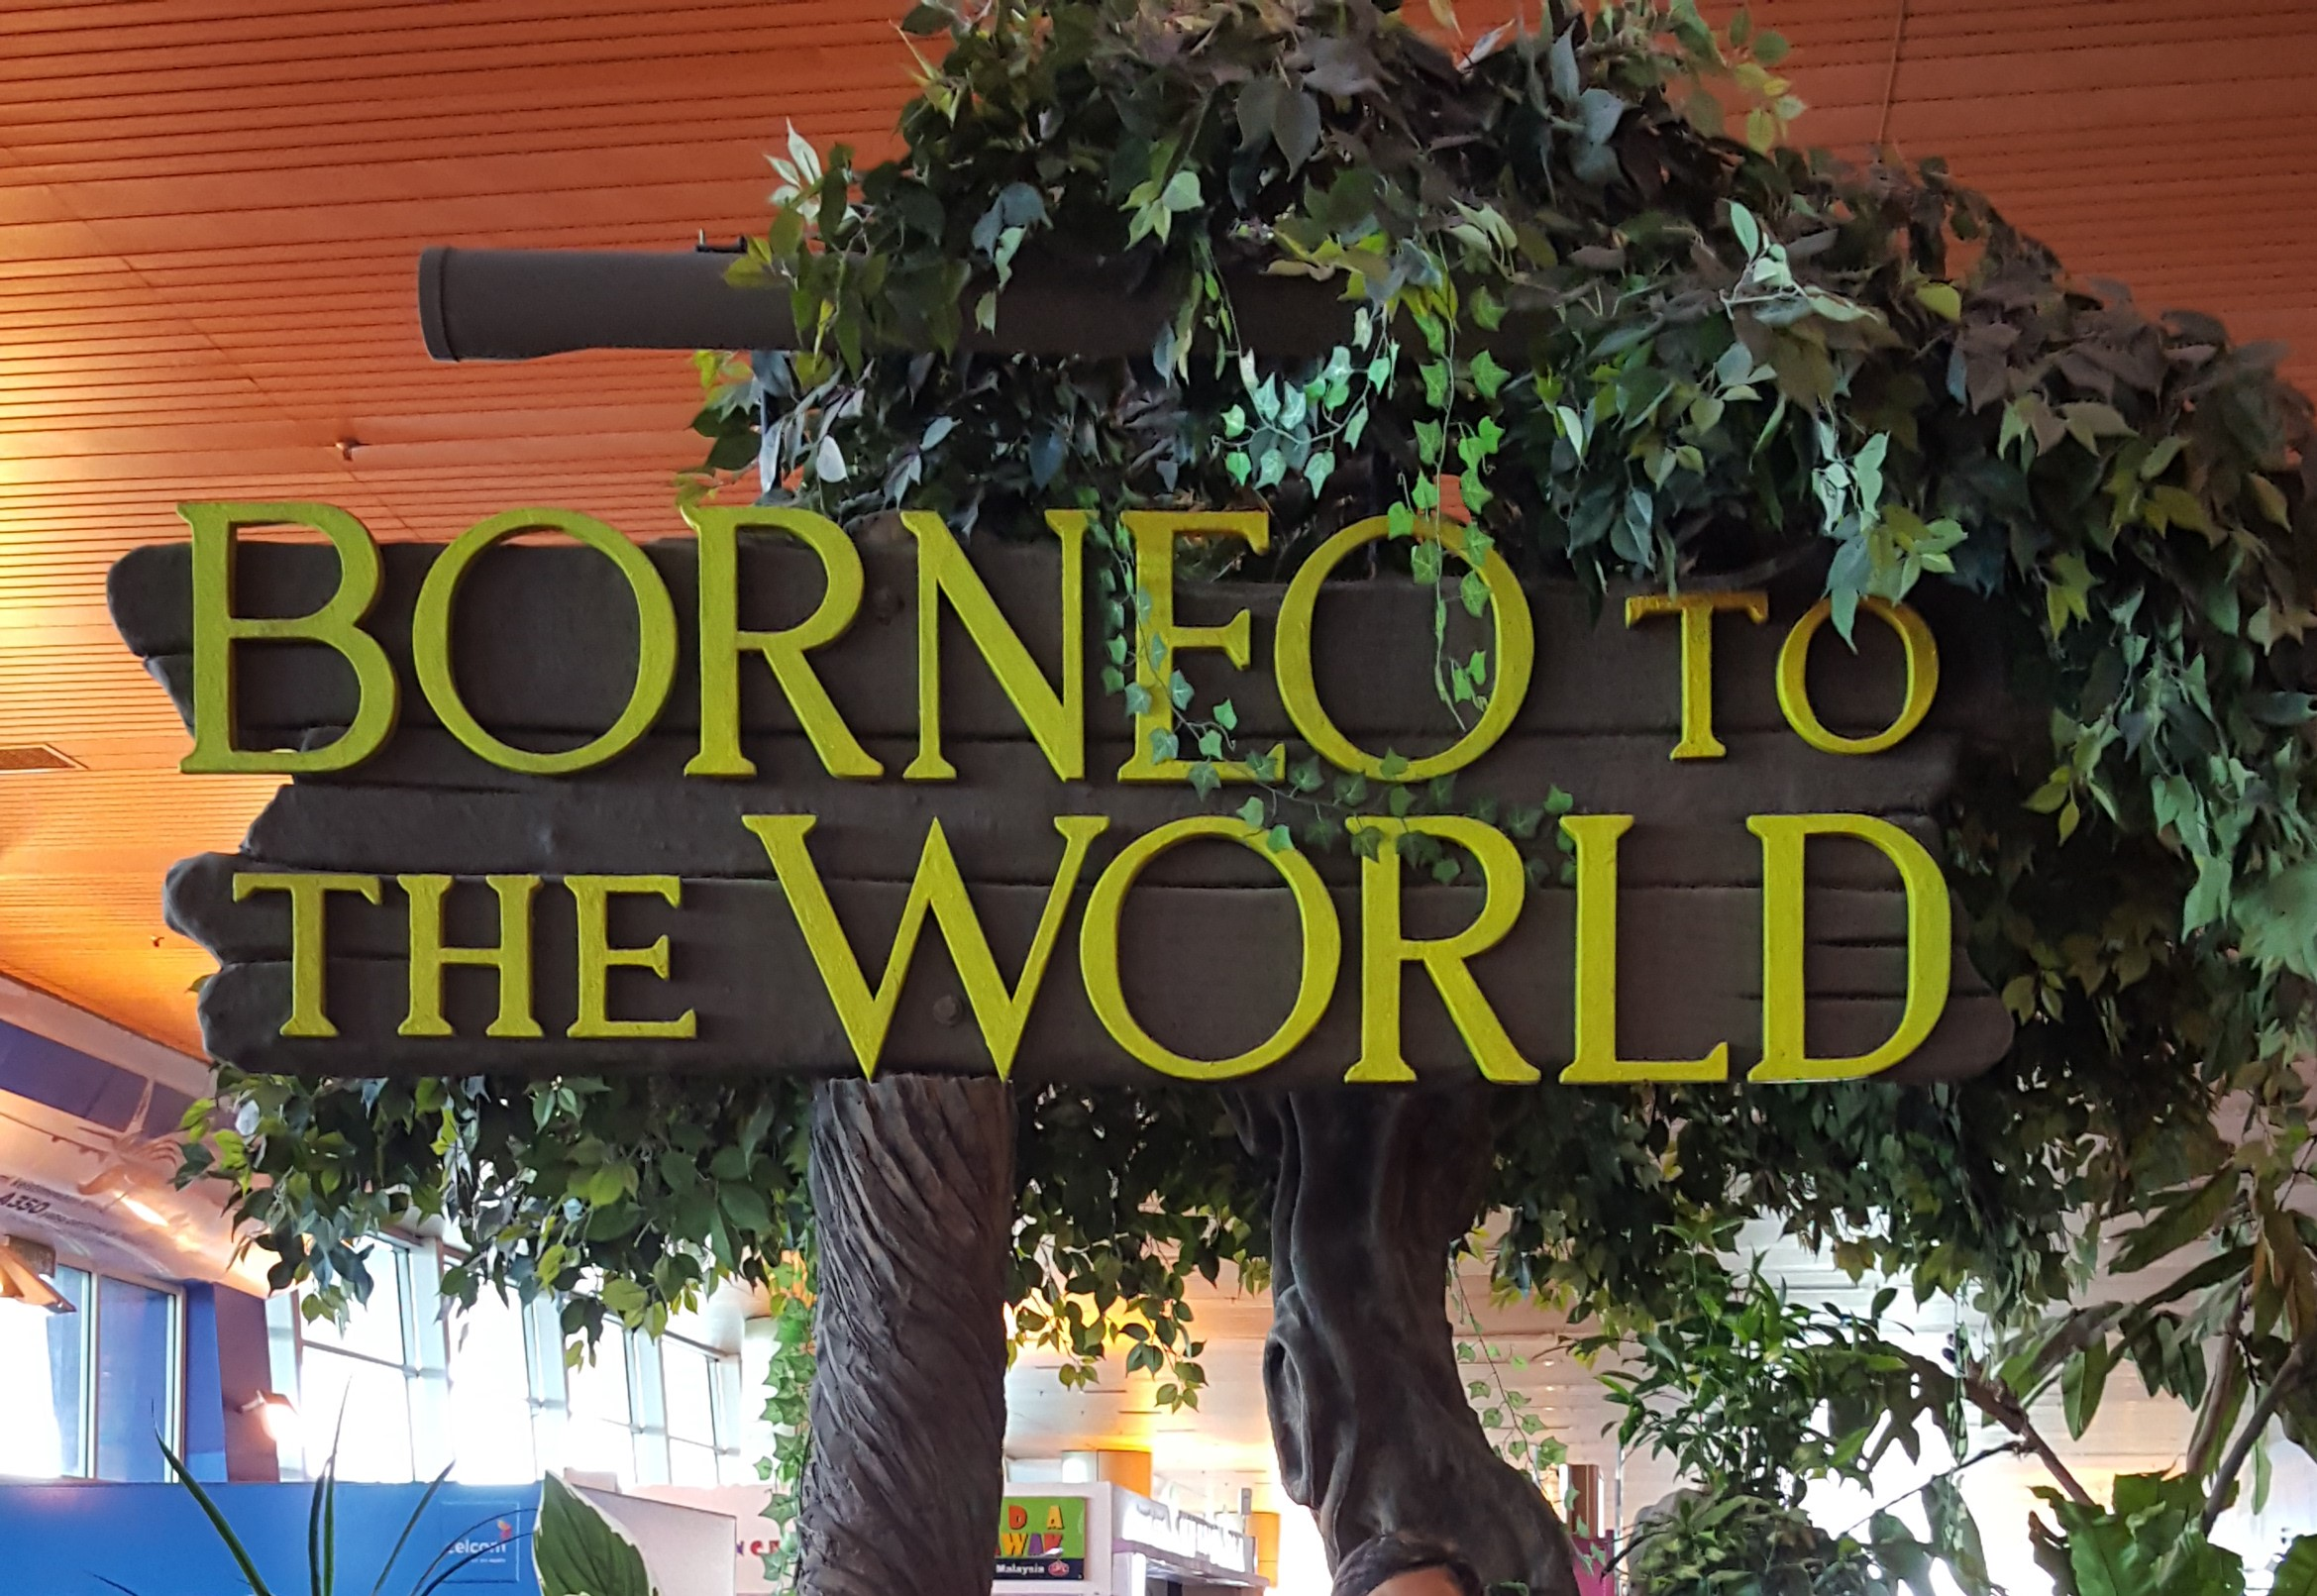 Bornéo to the world